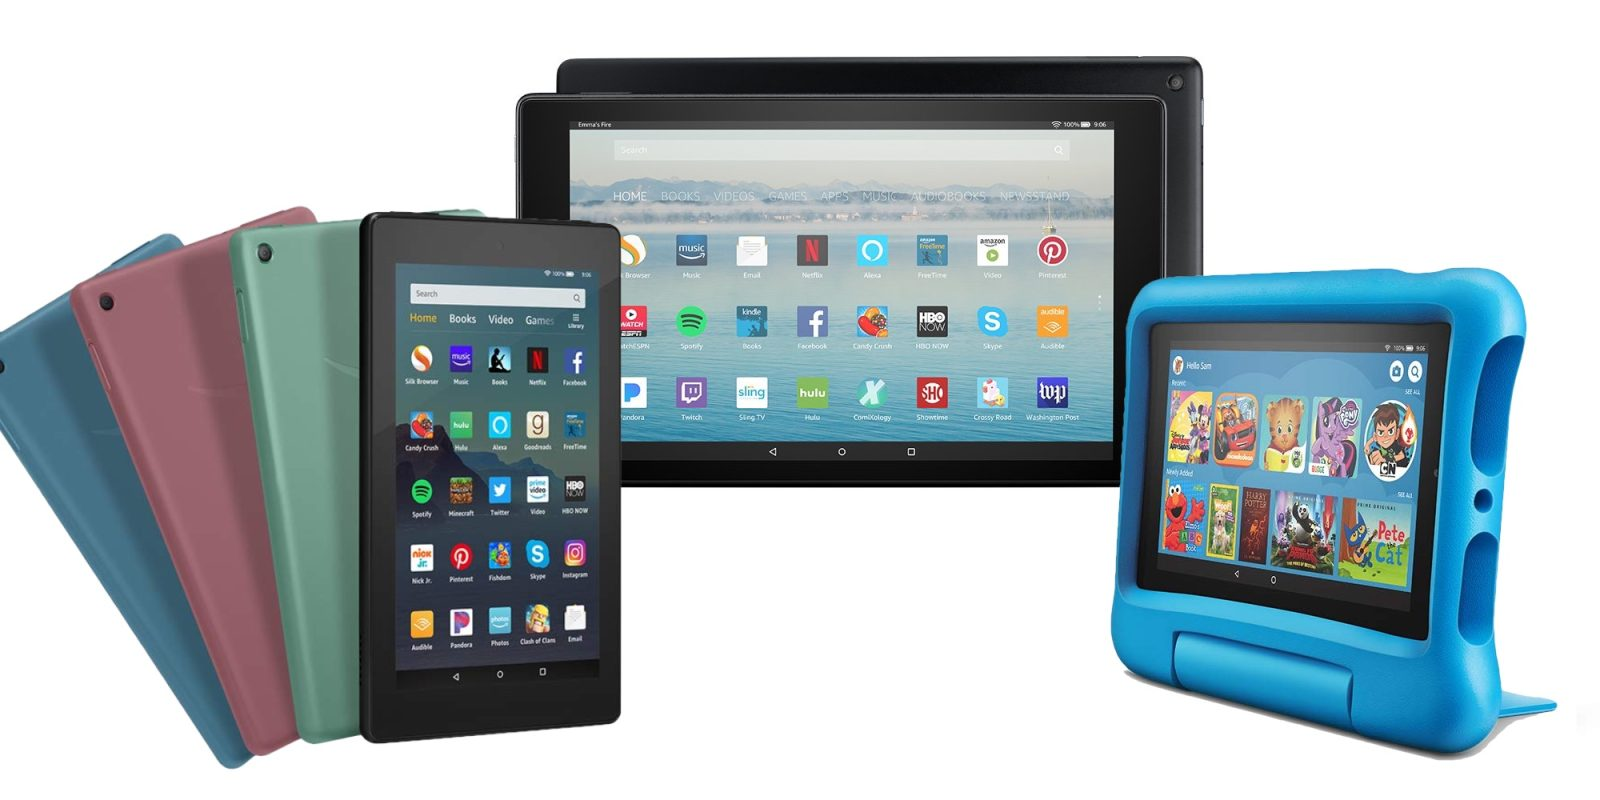 Amazon takes up to $120 off Kindle Fire tablets in Prime Day sale